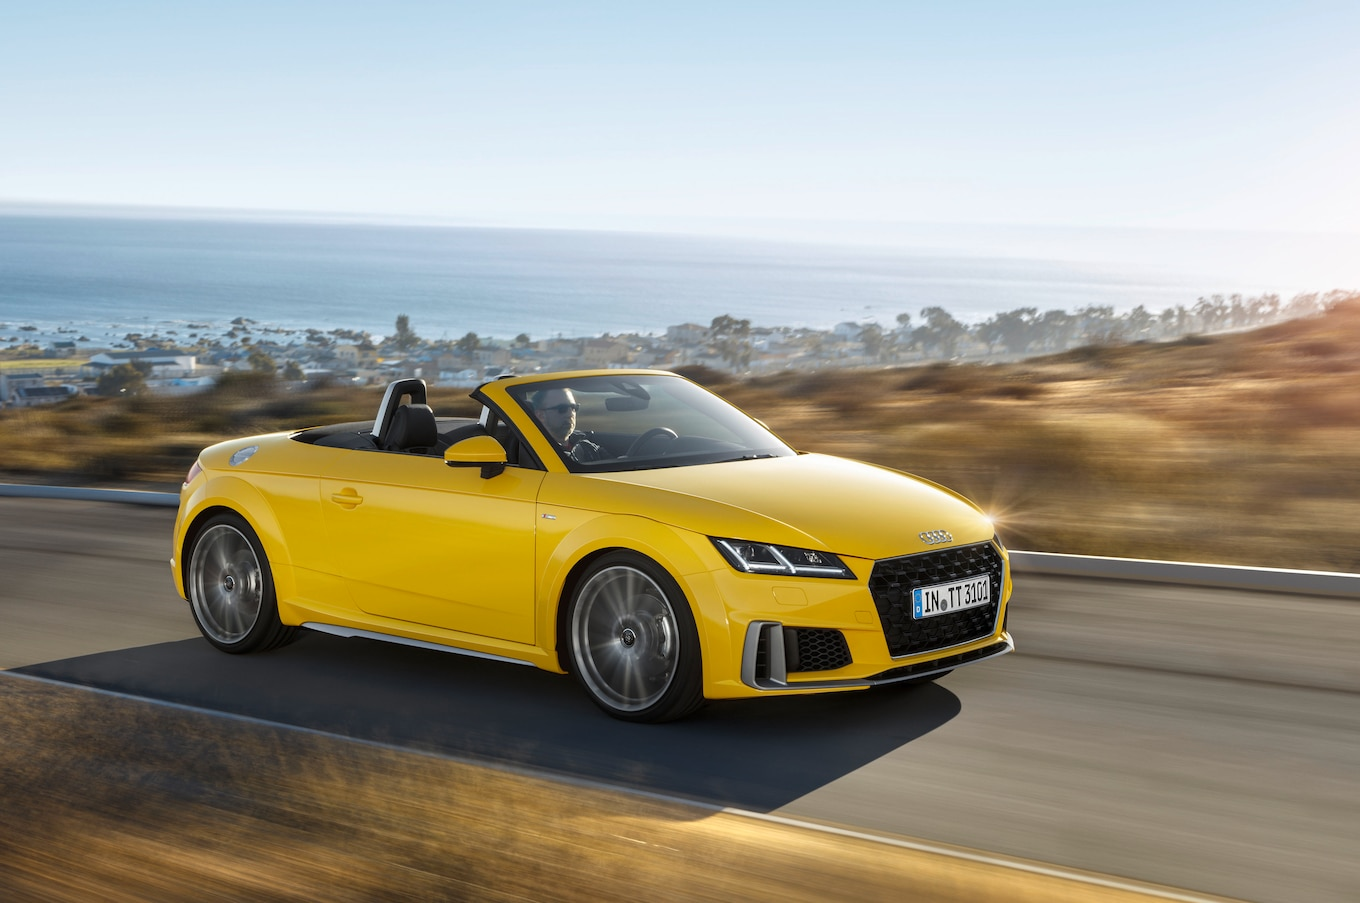 Garage Audi Tours Will The Audi Tt Be Discontinued Motortrend